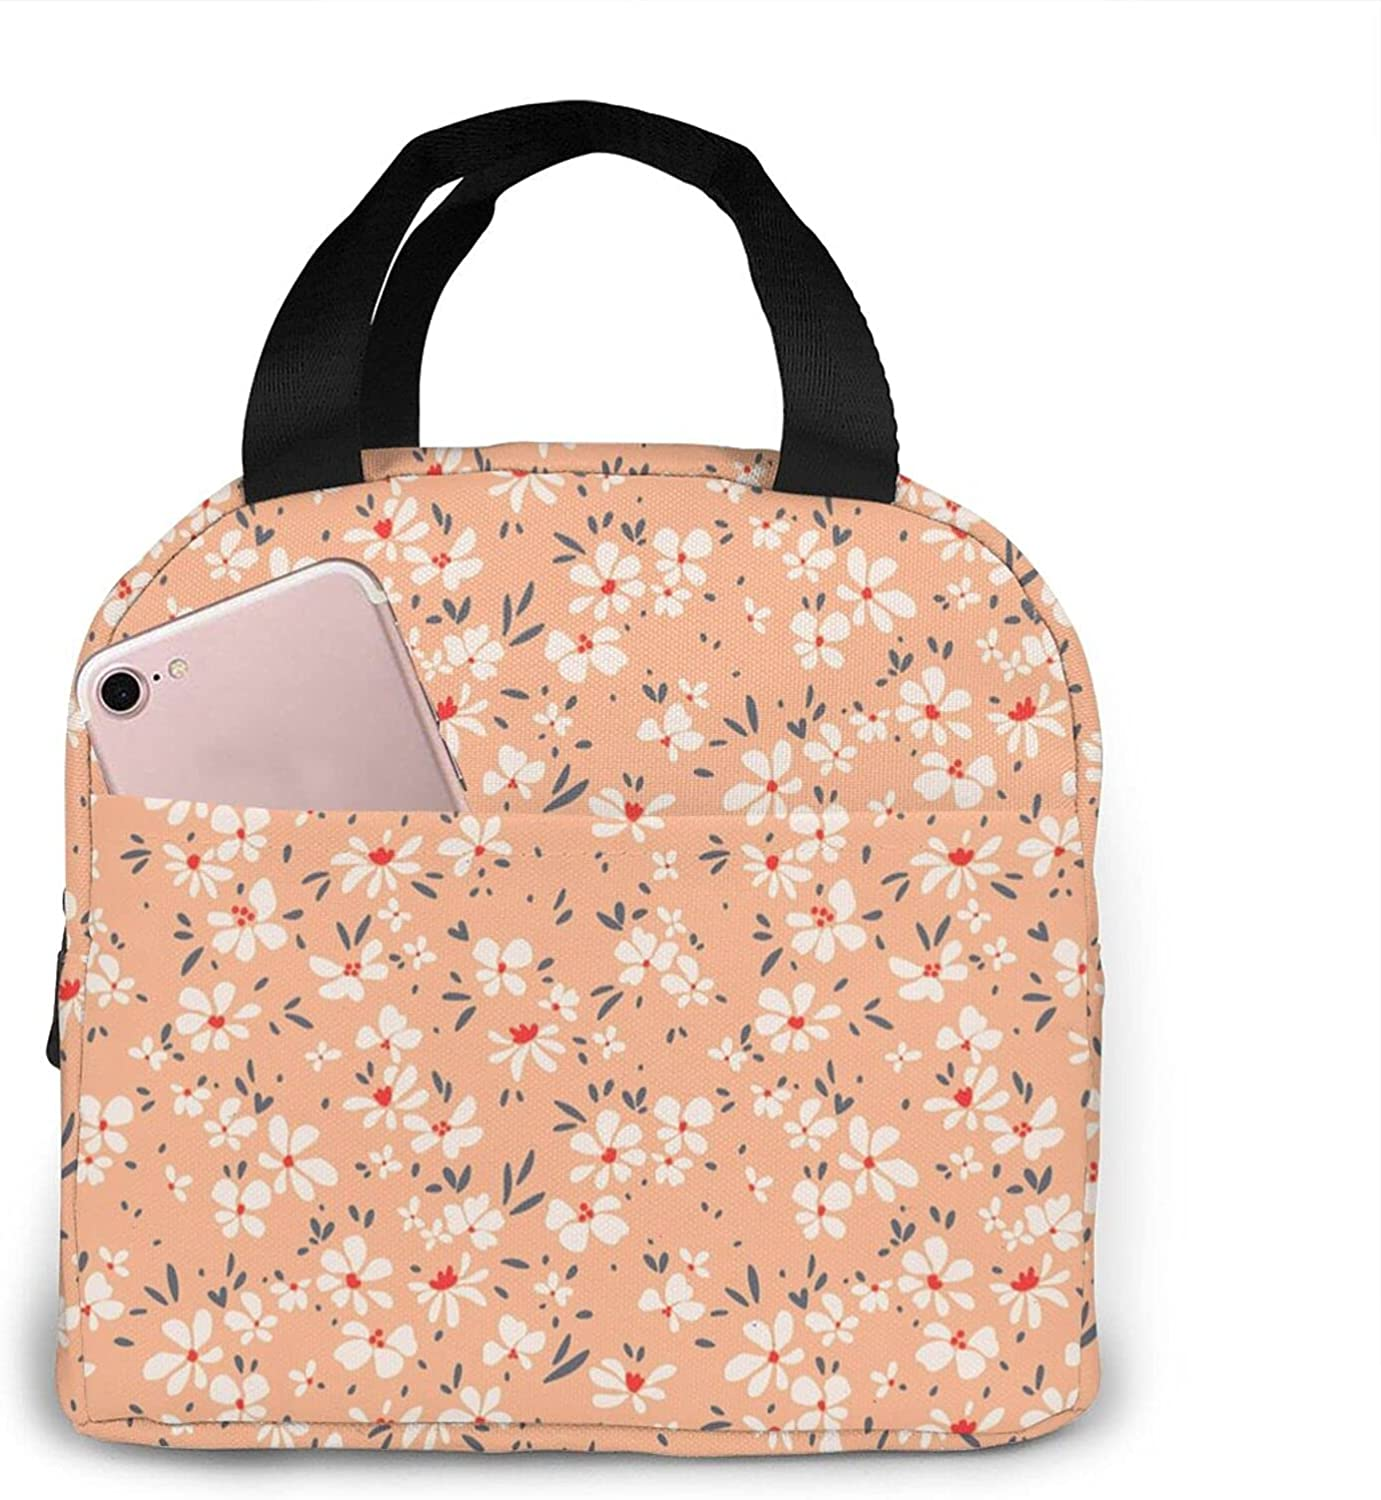 NAOINGEI Lovely Cheap bargain Flowers Reusable A surprise price is realized Insulated Lunch Bag Tote Cooler